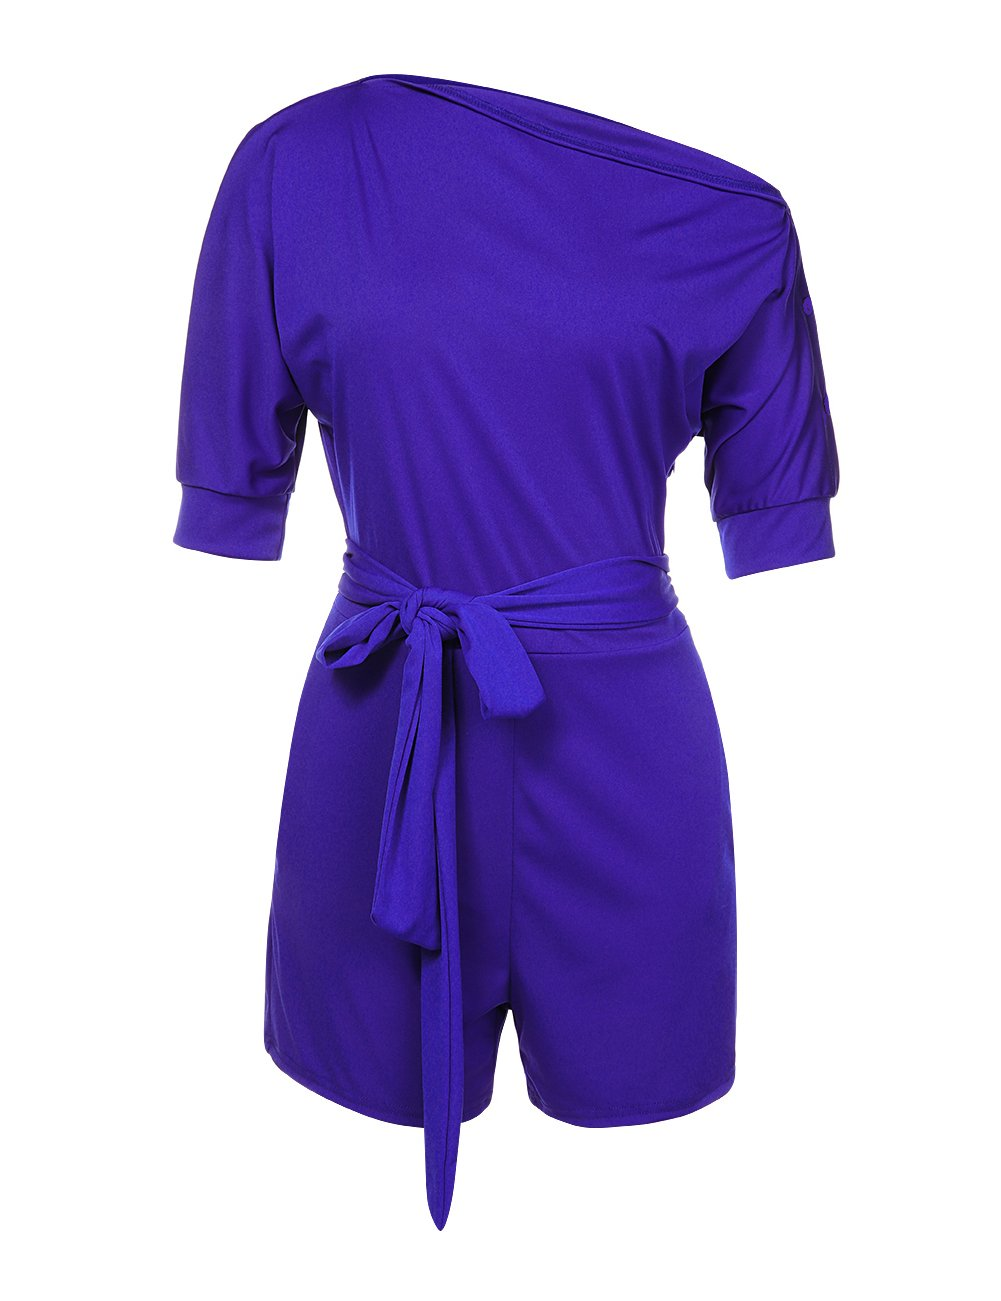 Vilover Summer Rompers and Jumpsuits for Women with Pockets (XL, Blue 1#)